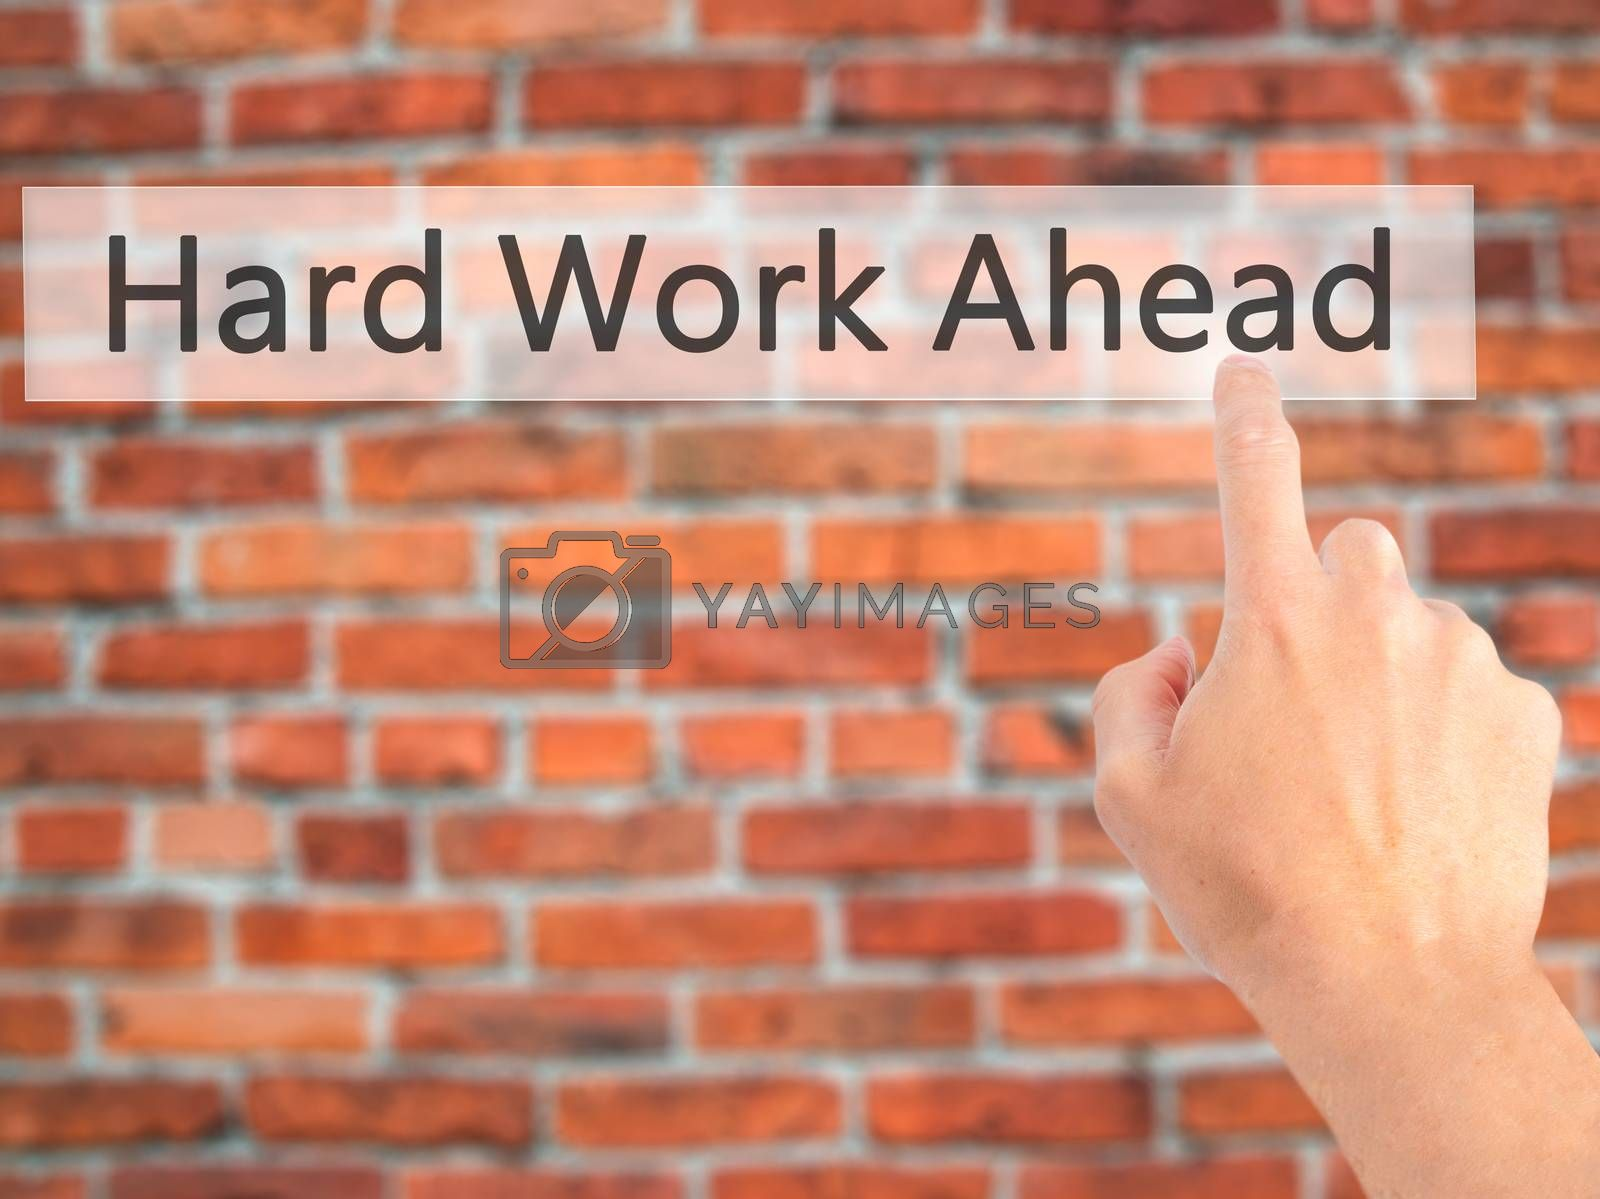 Hard Work Ahead - Hand pressing a button on blurred background c by jackald